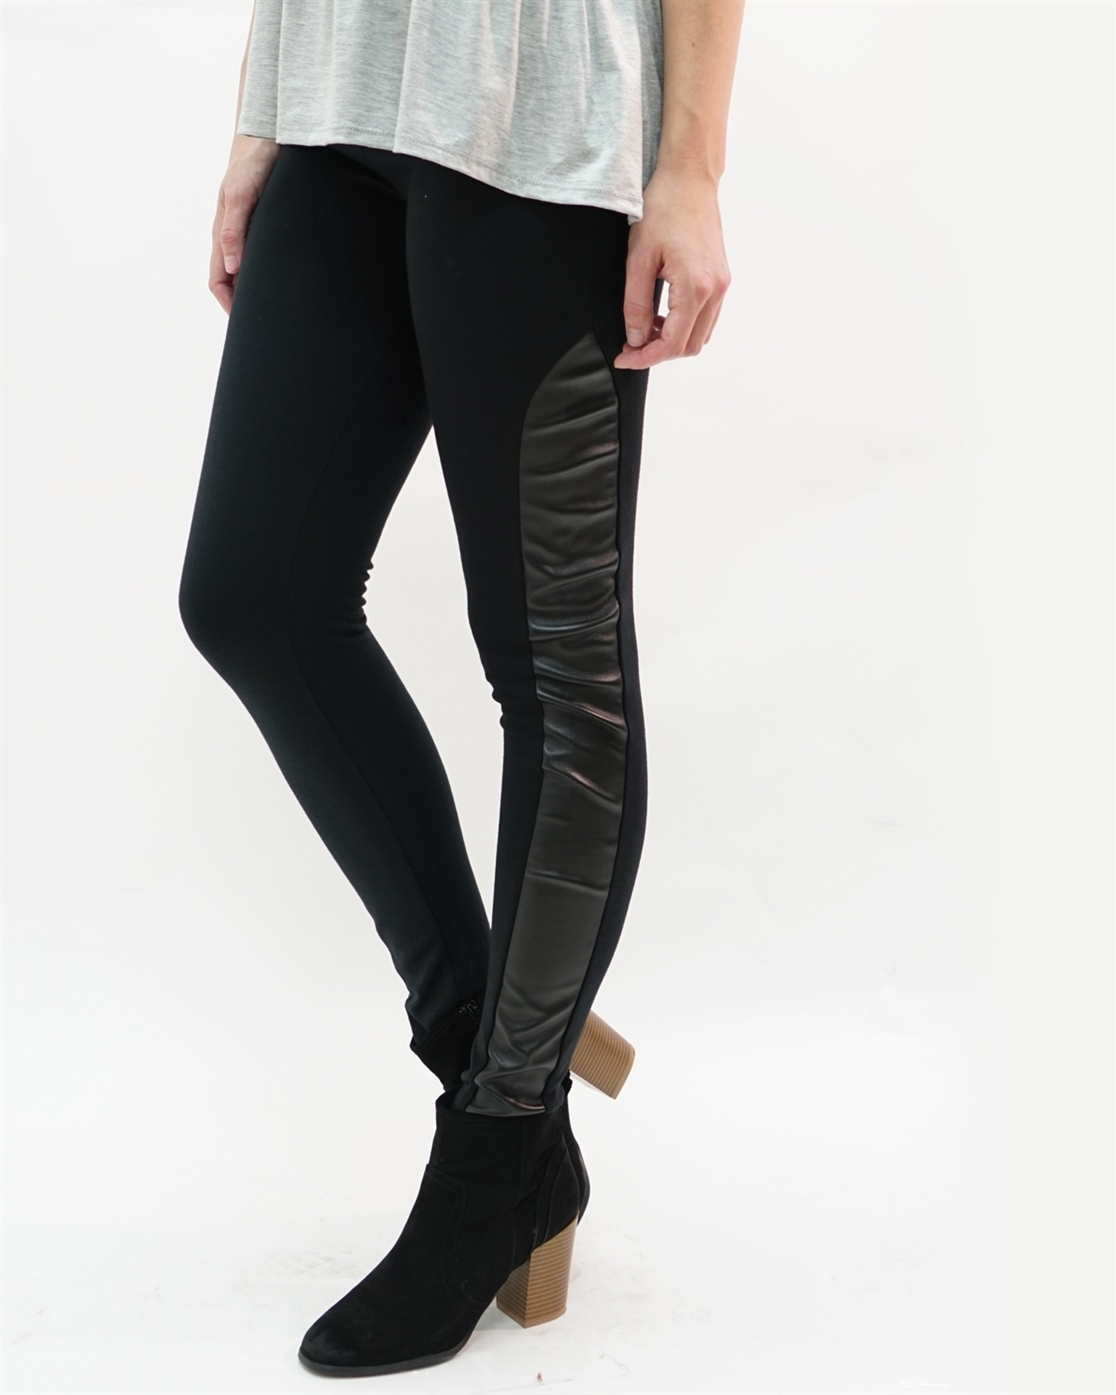 FAUX LEATHER PANEL LEGGINGS - orangeshine.com